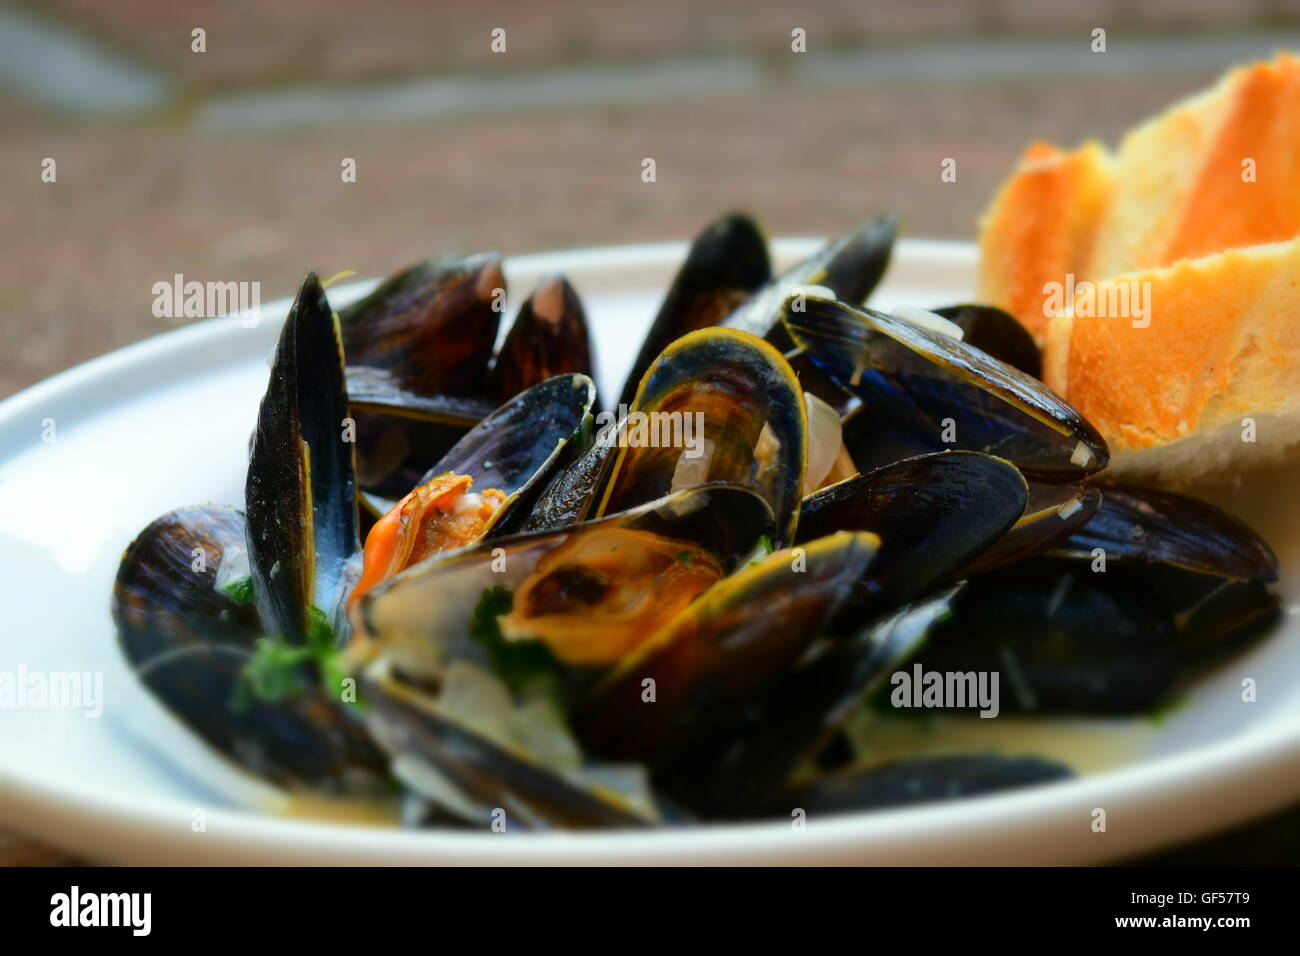 Dinner time. mussels - Stock Image